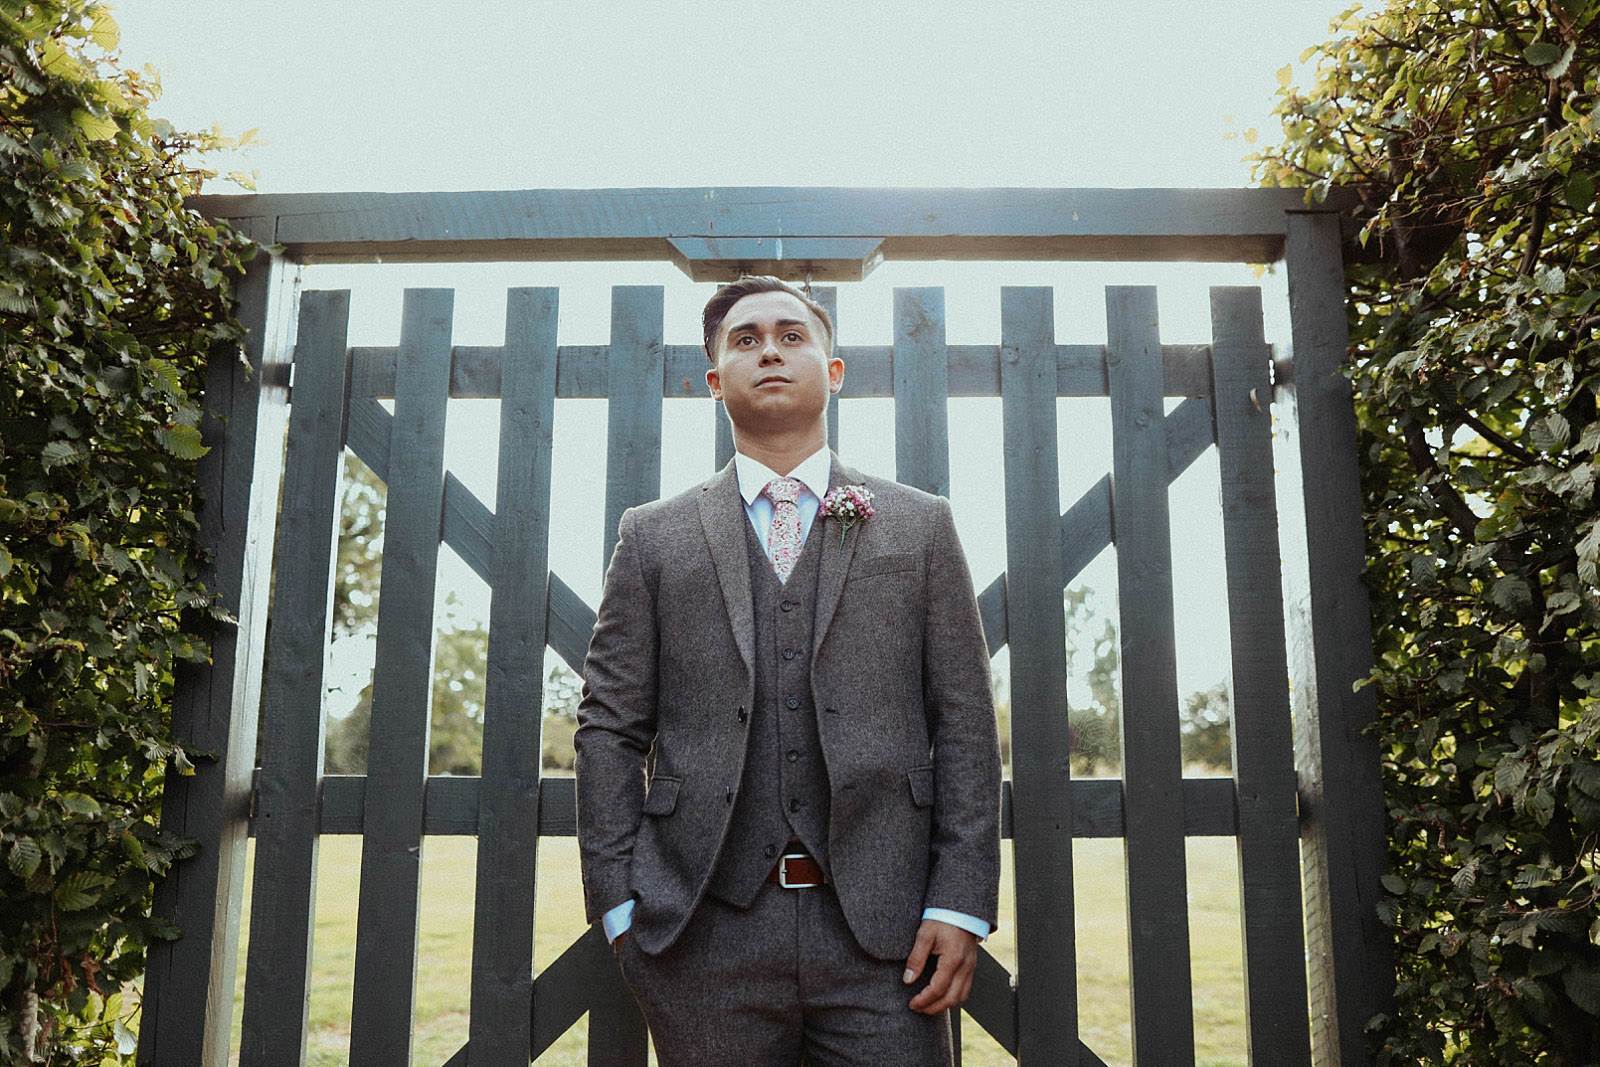 groom standing in suit with fence behind him